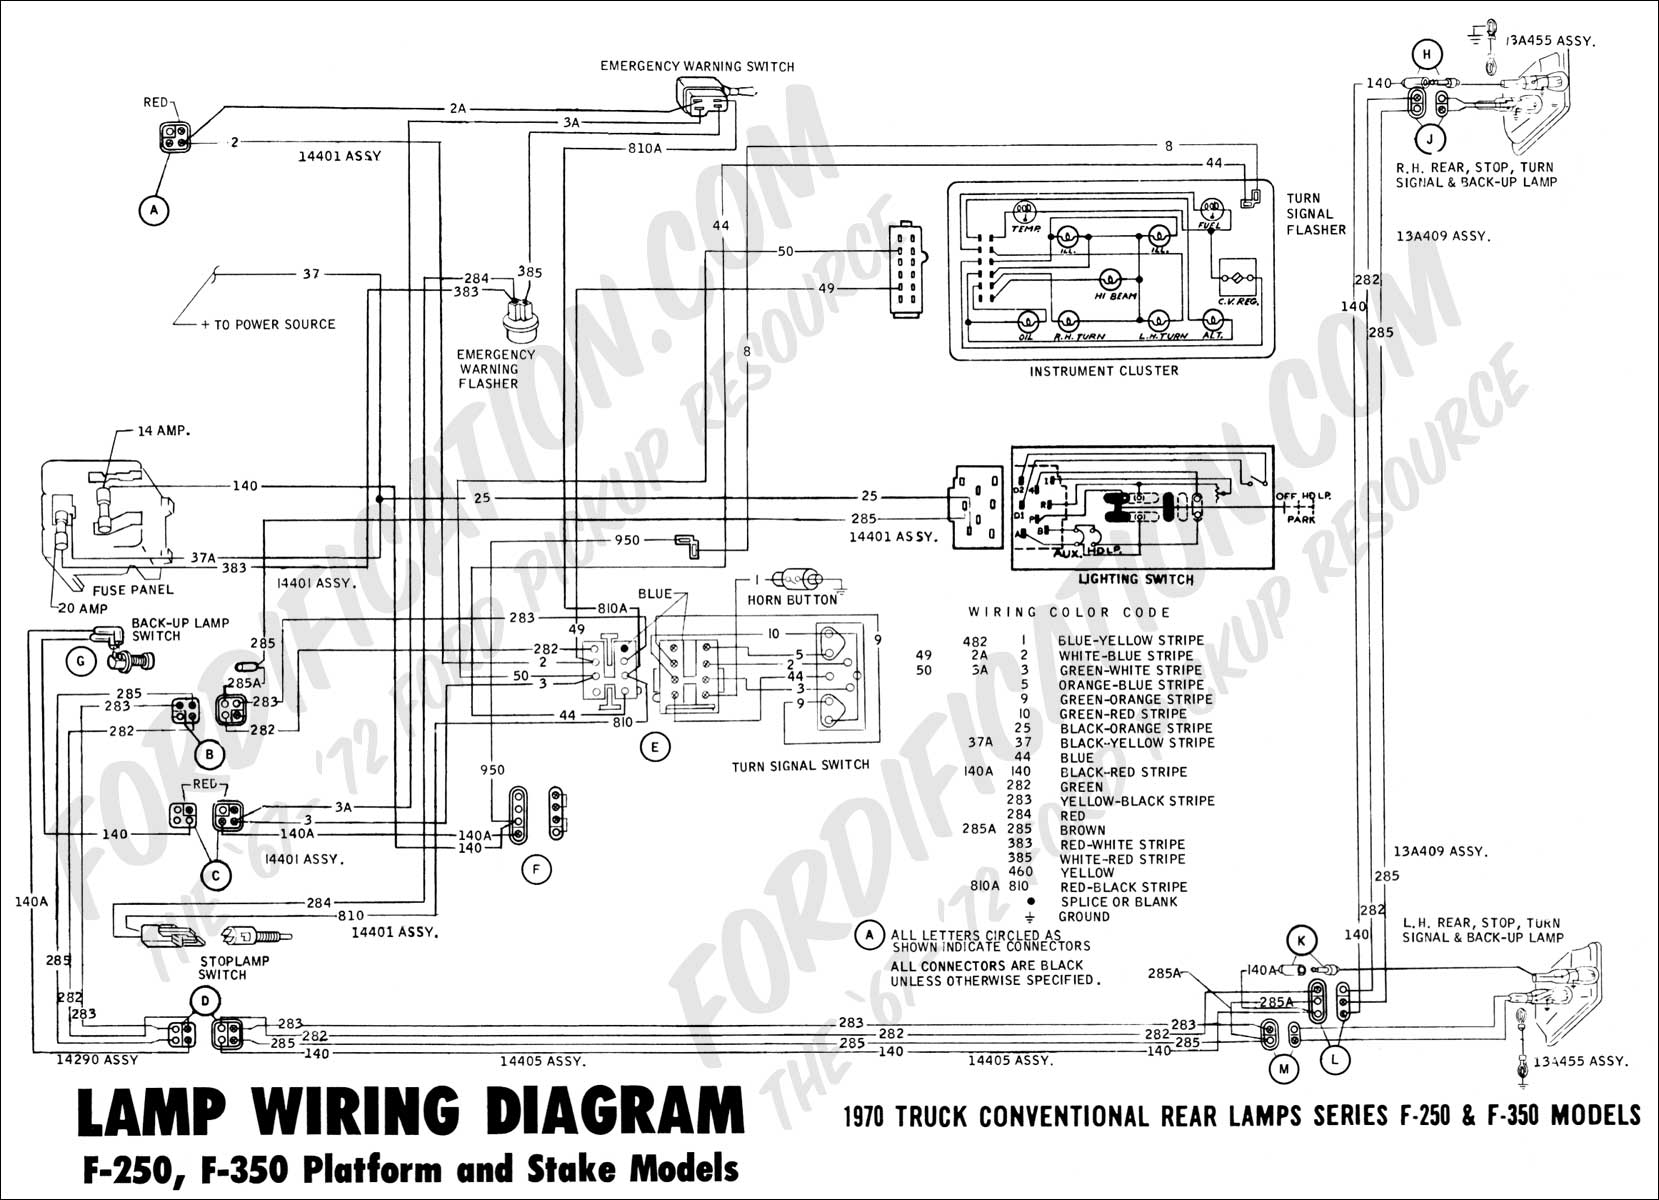 hight resolution of 1993 ford headlight switch wiring diagram wiring diagrams scematic 1977 f250 wiring diagram headlight switch wiring